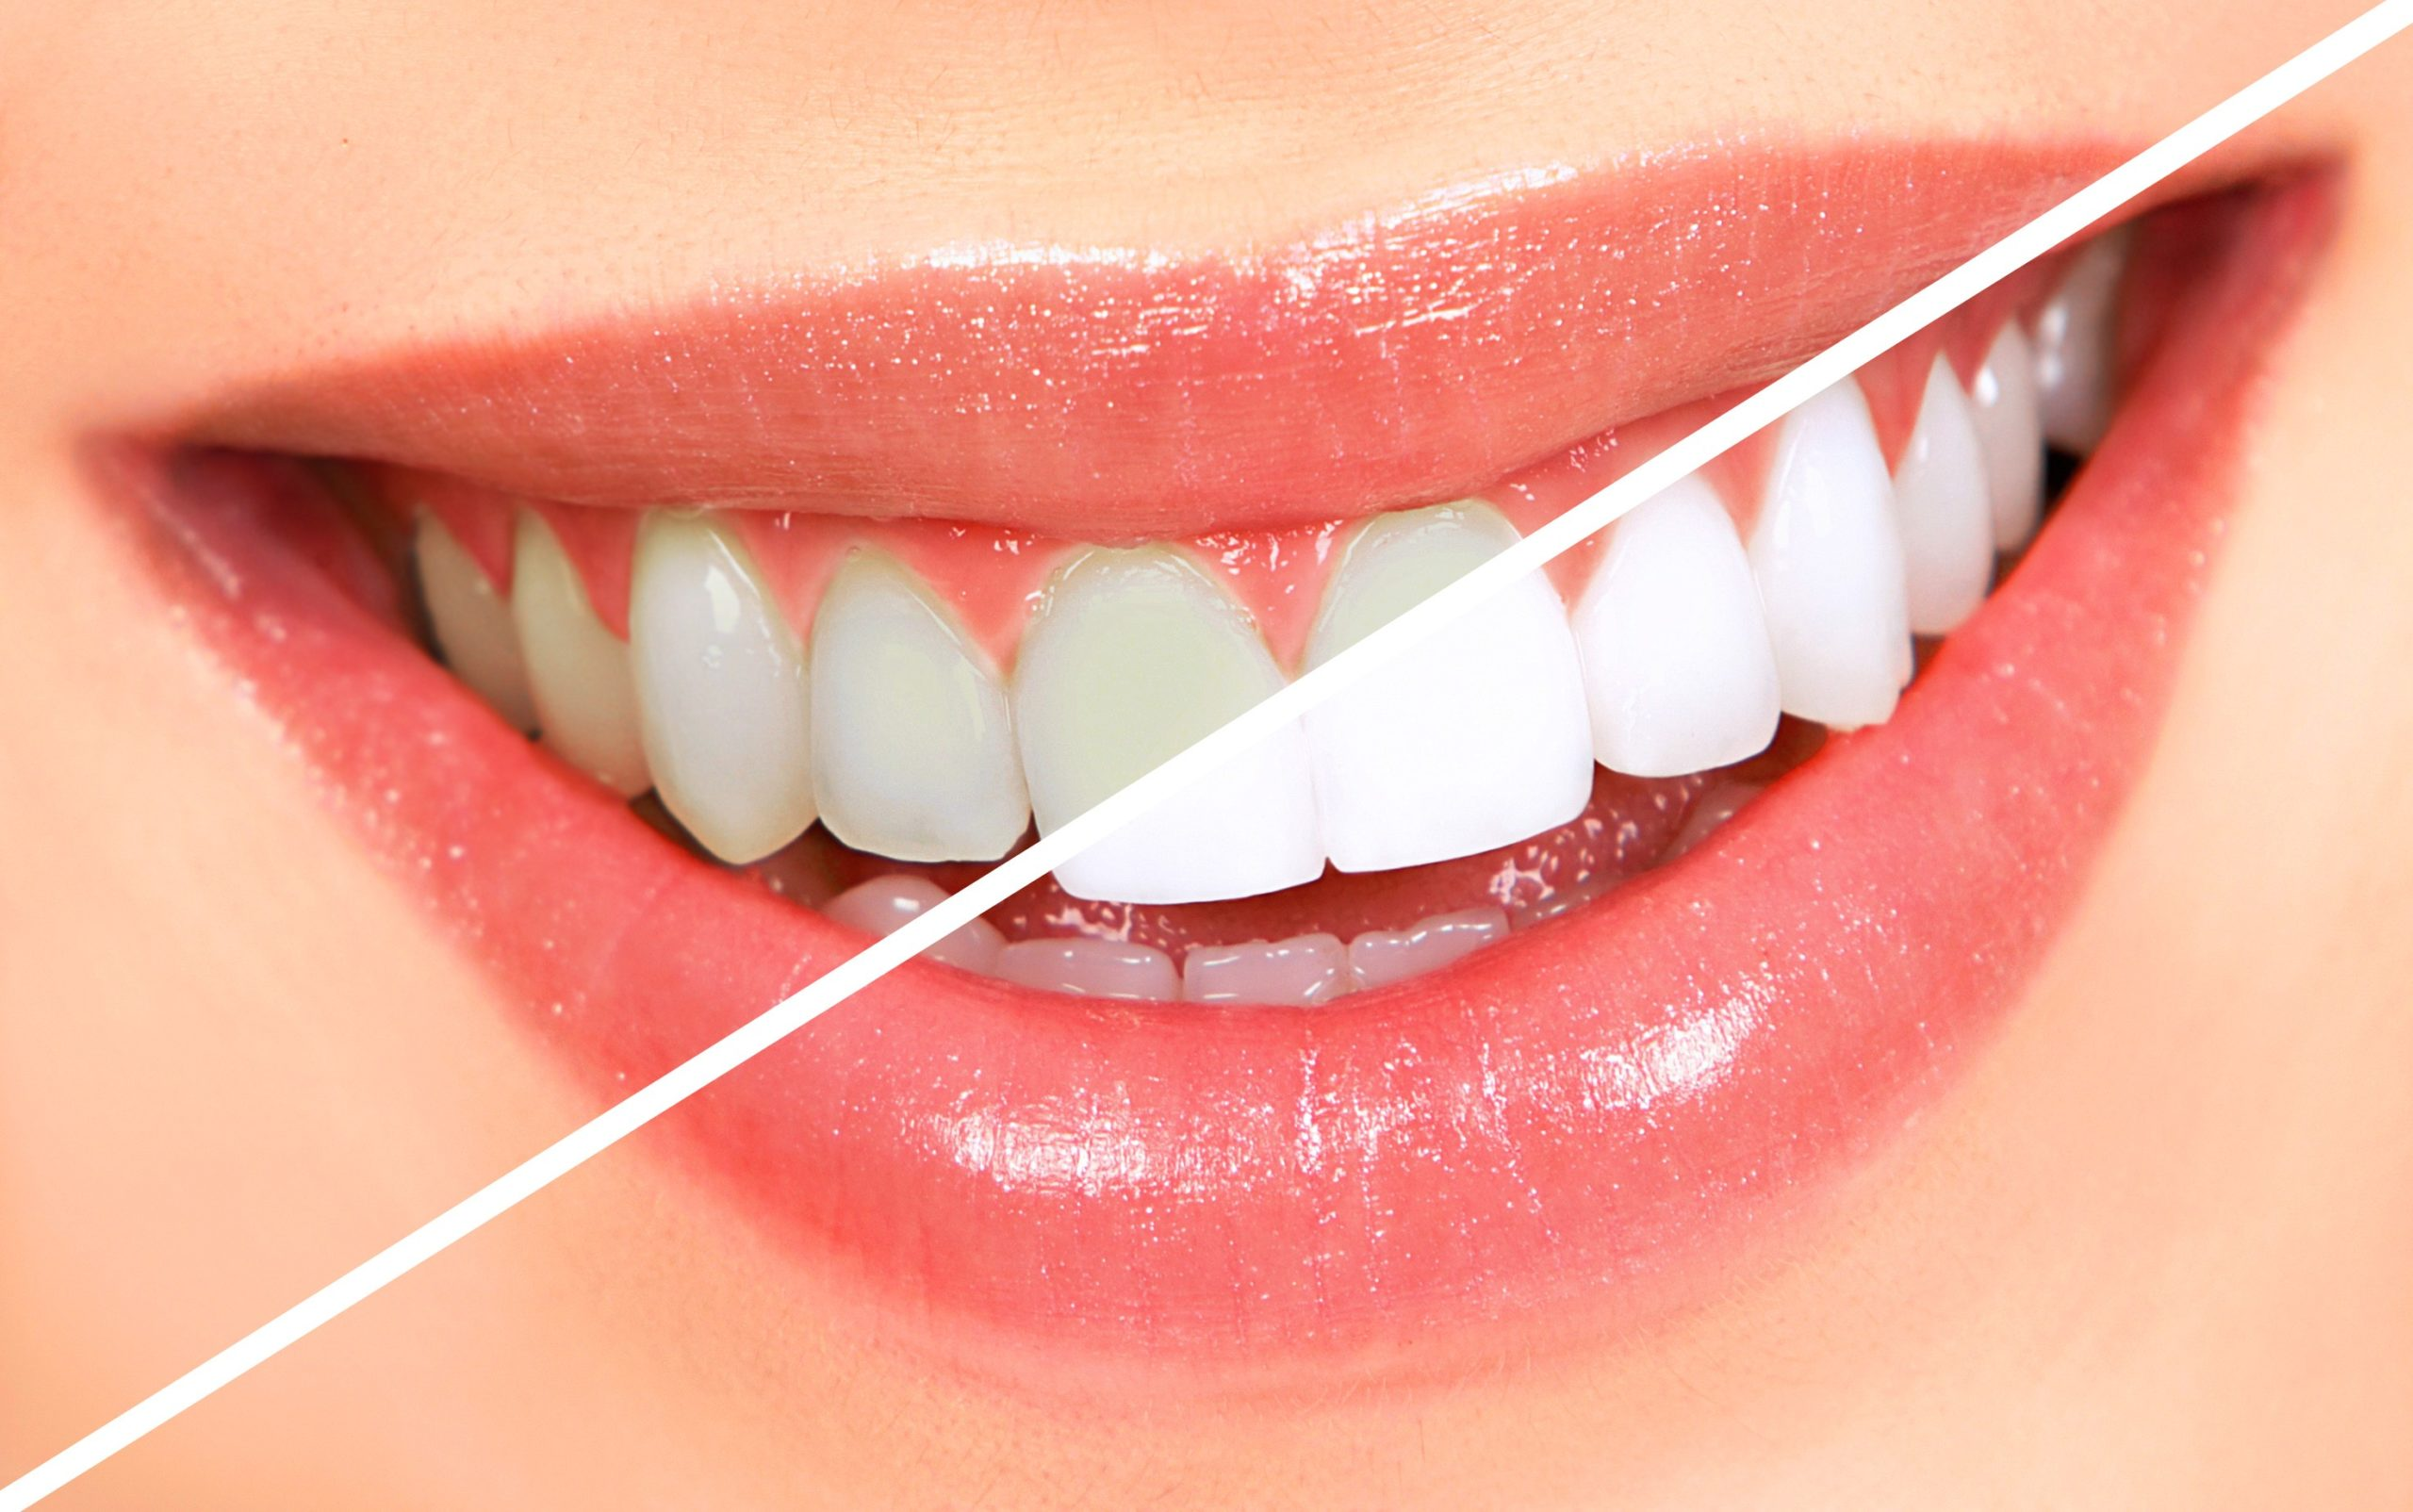 Teeth Whitening : Teeth Whitening in Hyderabad : The Dental Specialist